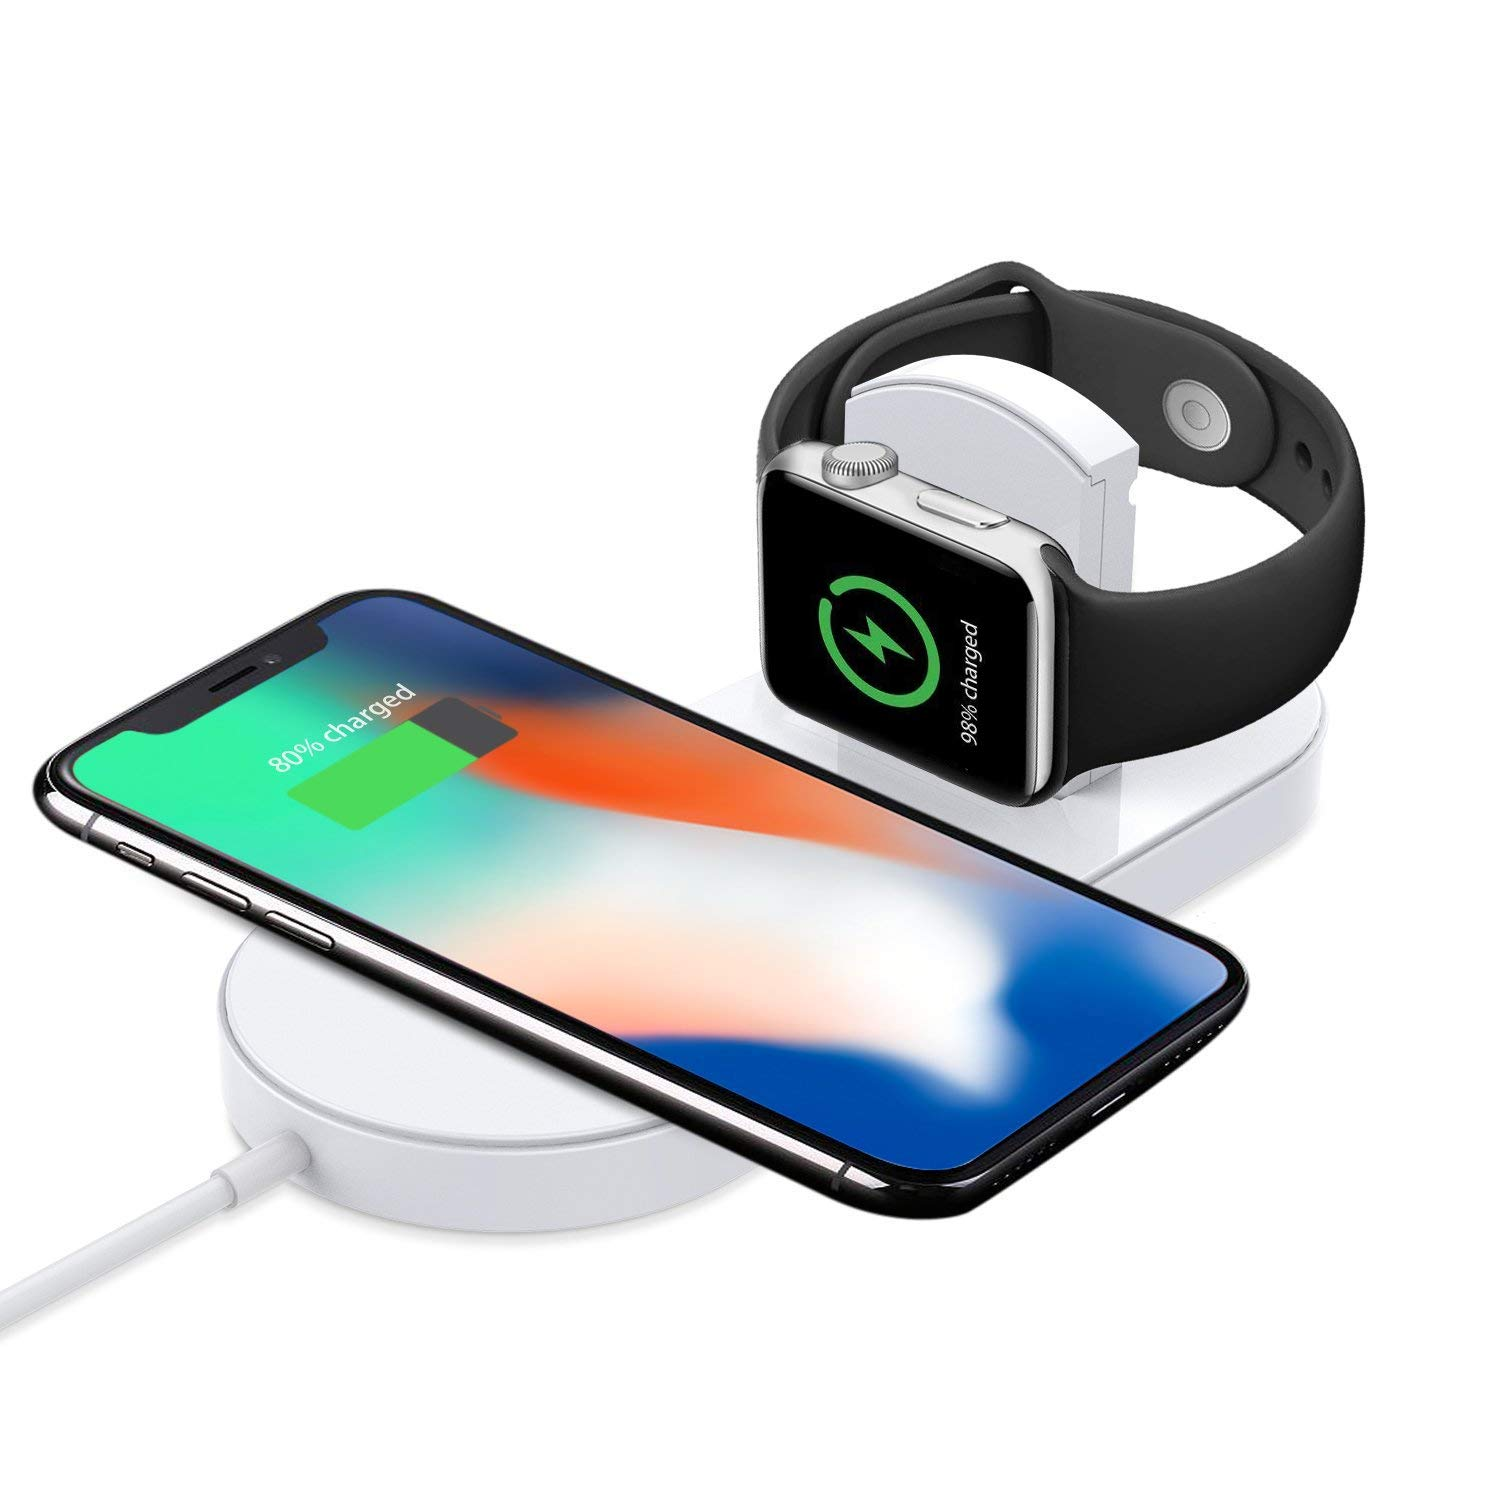 TrophyRak Magnetic Wireless Charger 2-in-1 Pad Stand Cable Compatible with Apple Watch, for iPhone X/8/8 Plus, Compatible with iWatch Series 1/2/3/4, 38mm 42mm, Samsung S8 Series, Note 8